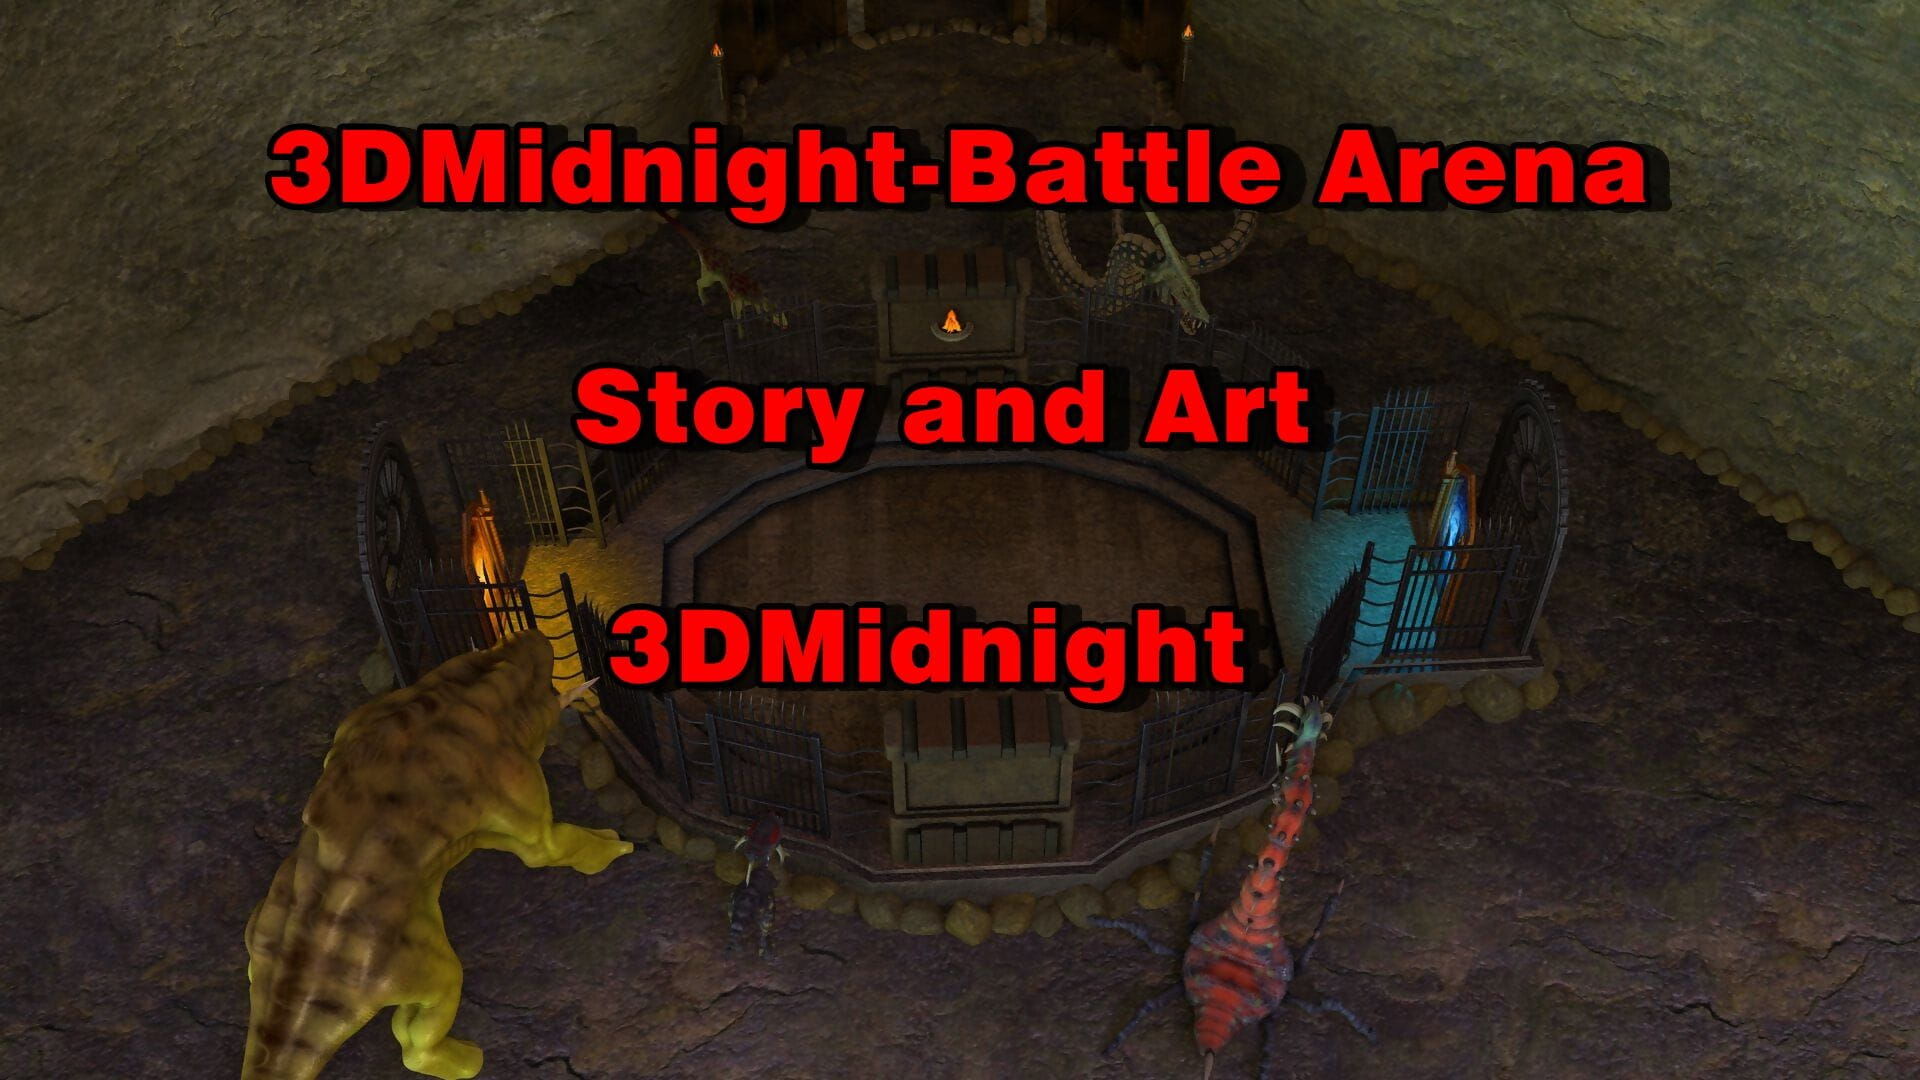 3DMidnight- Battle Arena page 1